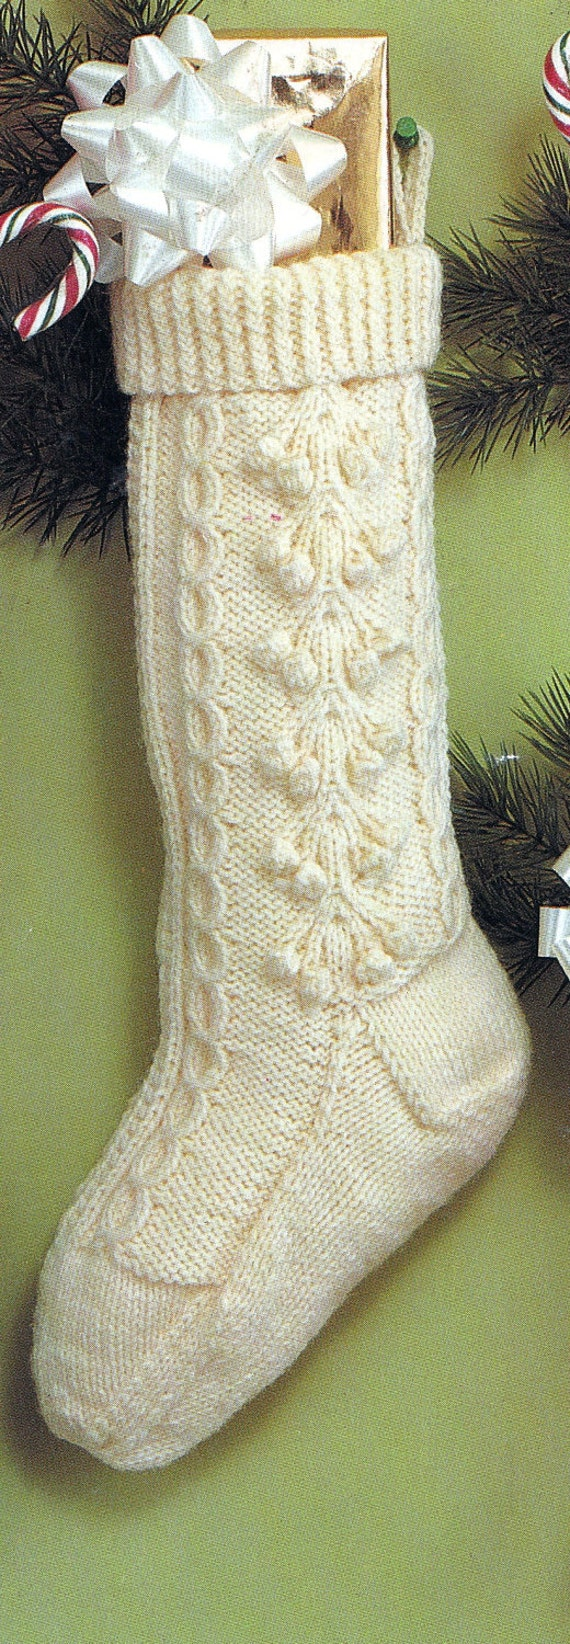 Knit Pattern Christmas Stocking : Knit Christmas Fisherman Stocking Vintage Knitting PDF PATTERN